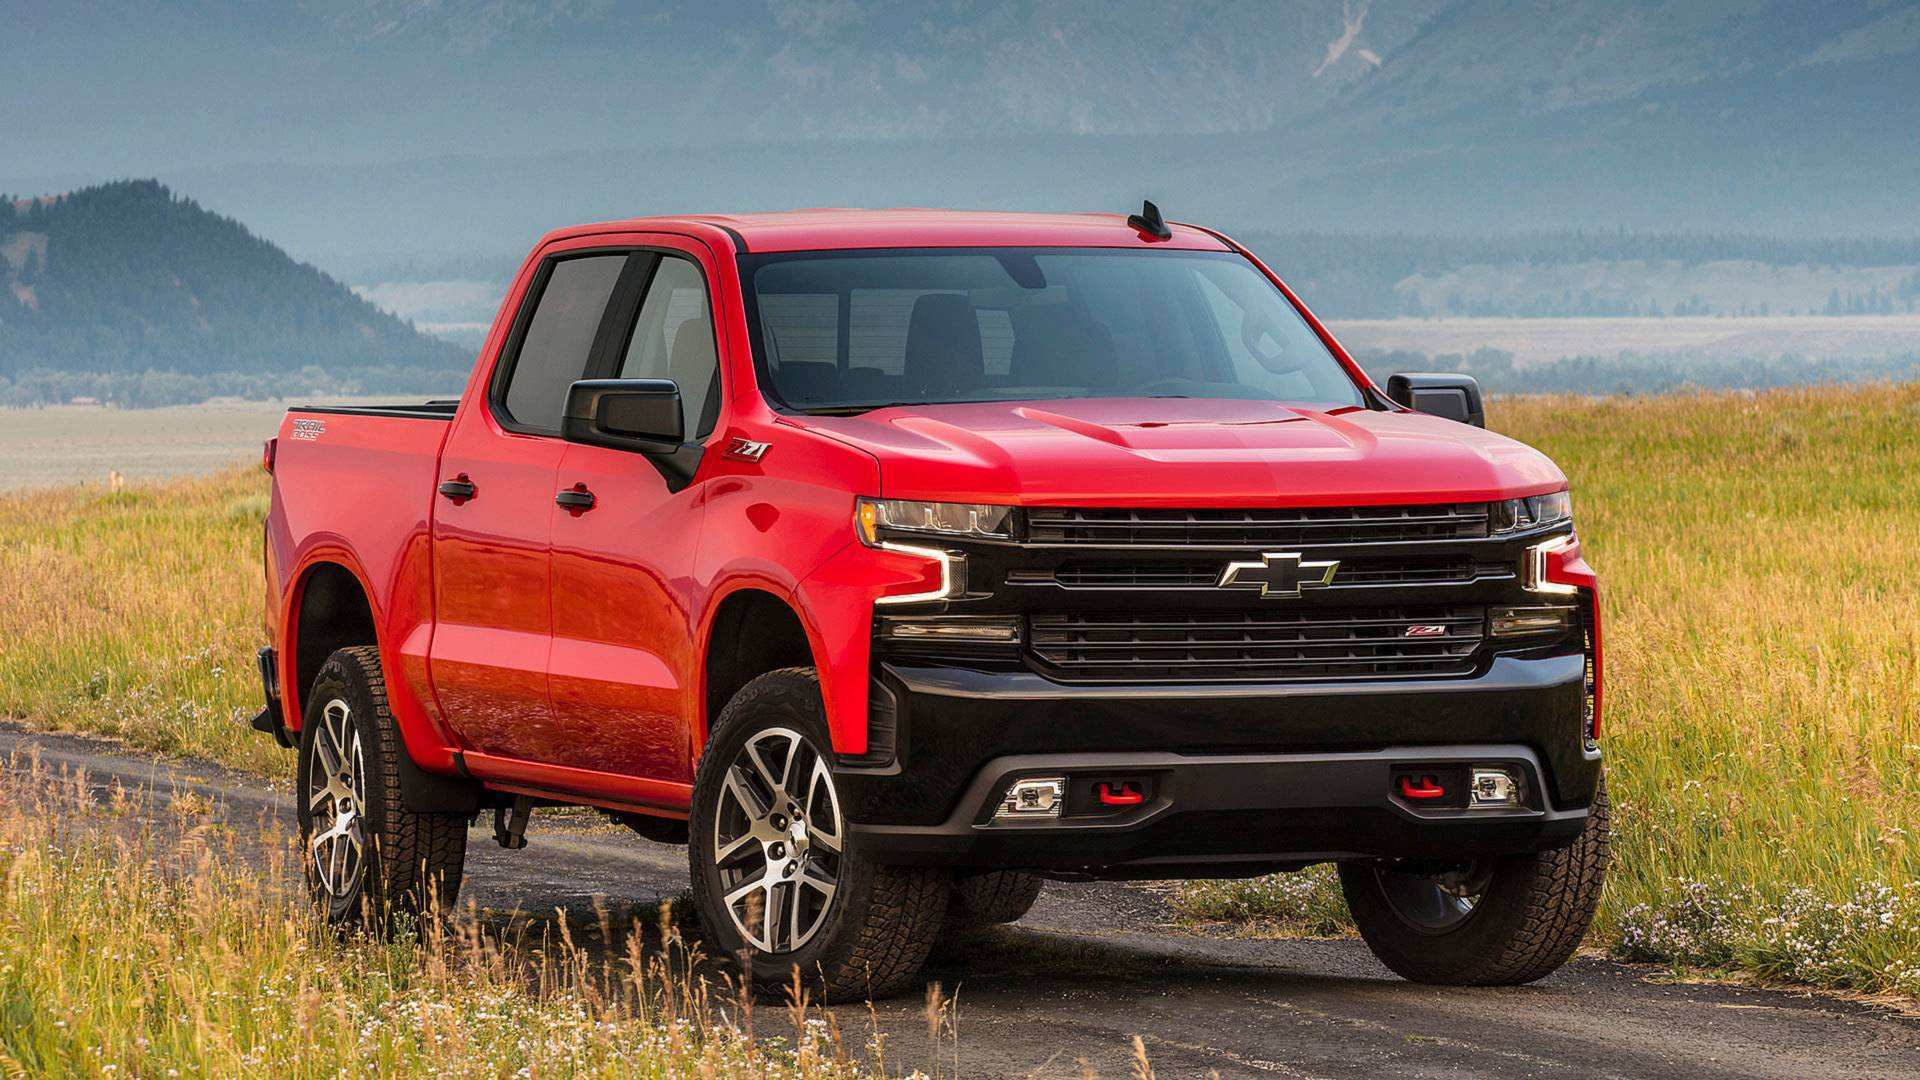 90 New 2019 Chevrolet 1500 Interior with 2019 Chevrolet 1500